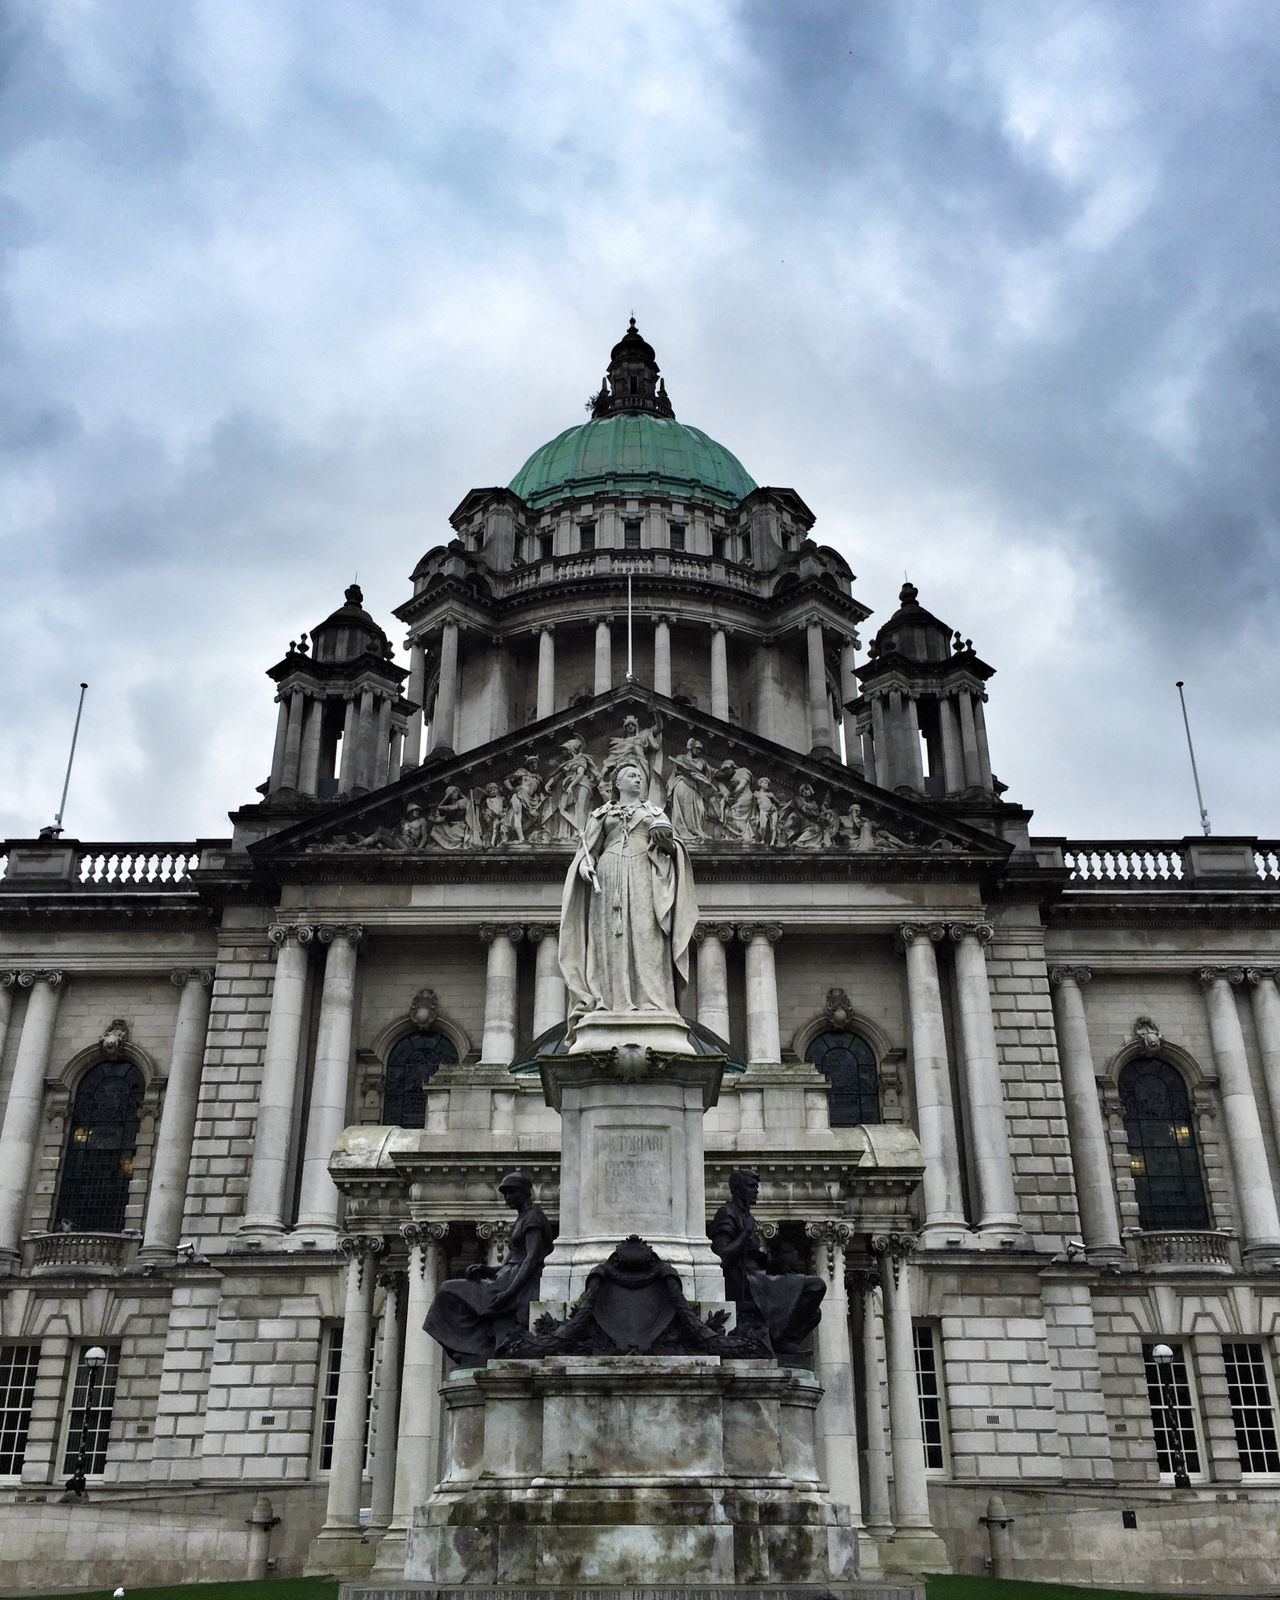 City Hall mit Königin. Belfast Northern Ireland City Hall Queen Victoria  Clouds Architecture Statue Building Exterior Sky History The Past Façade Travel Destinations Tourism Travel Built Structure Sculpture Dominant Power Politics Victorian